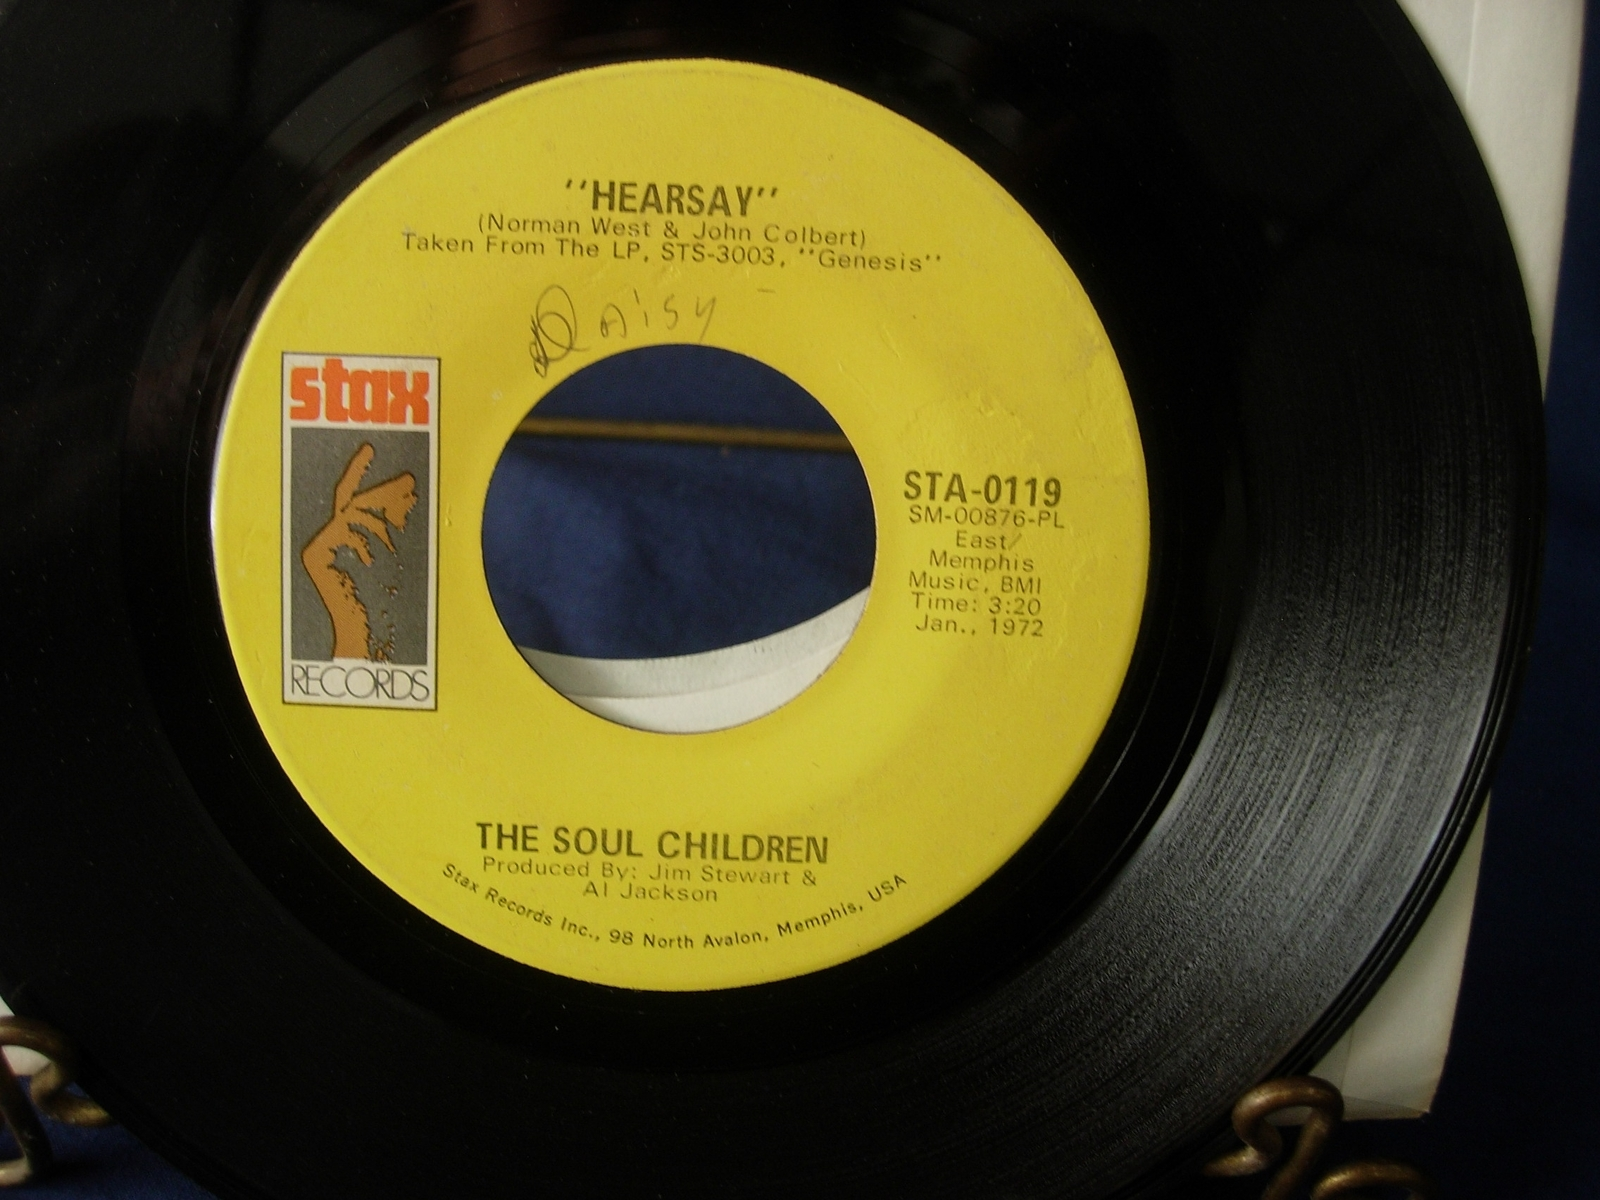 THE SOUL CHILDREN Hearsay / Don't Take My Sunshine - Stax Records STA-0119